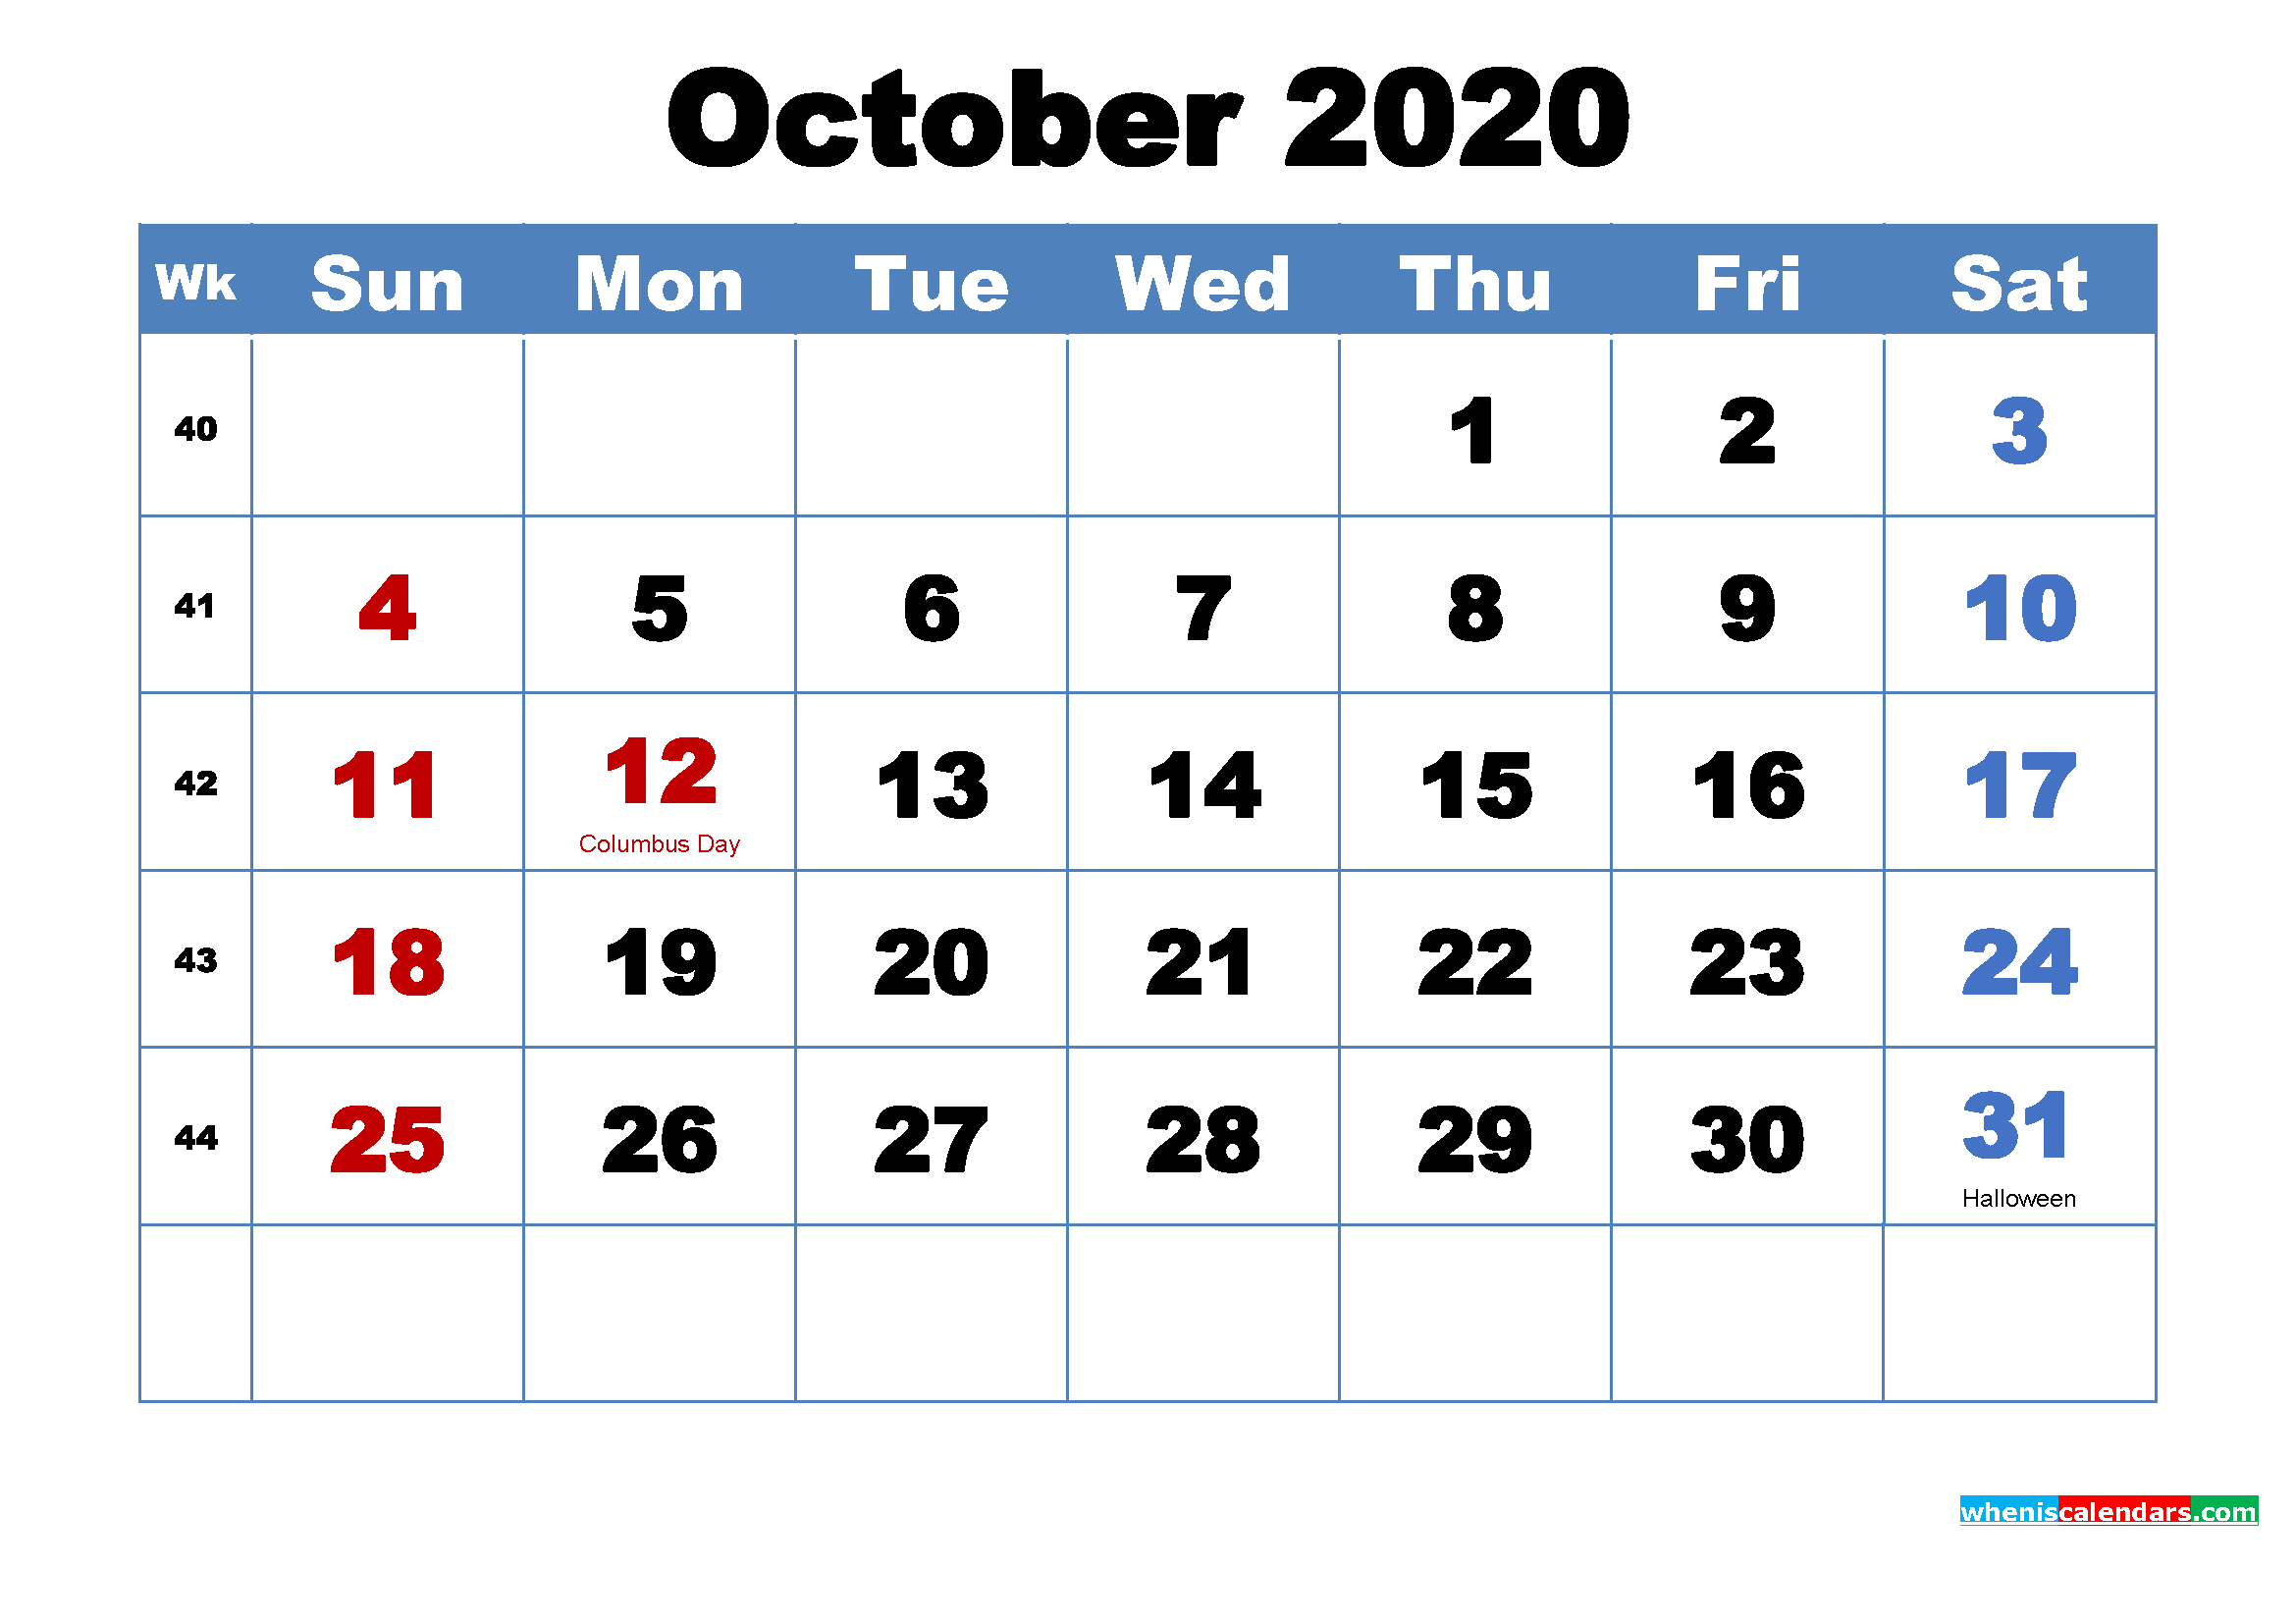 October 2020 Desktop Calendar Free Download